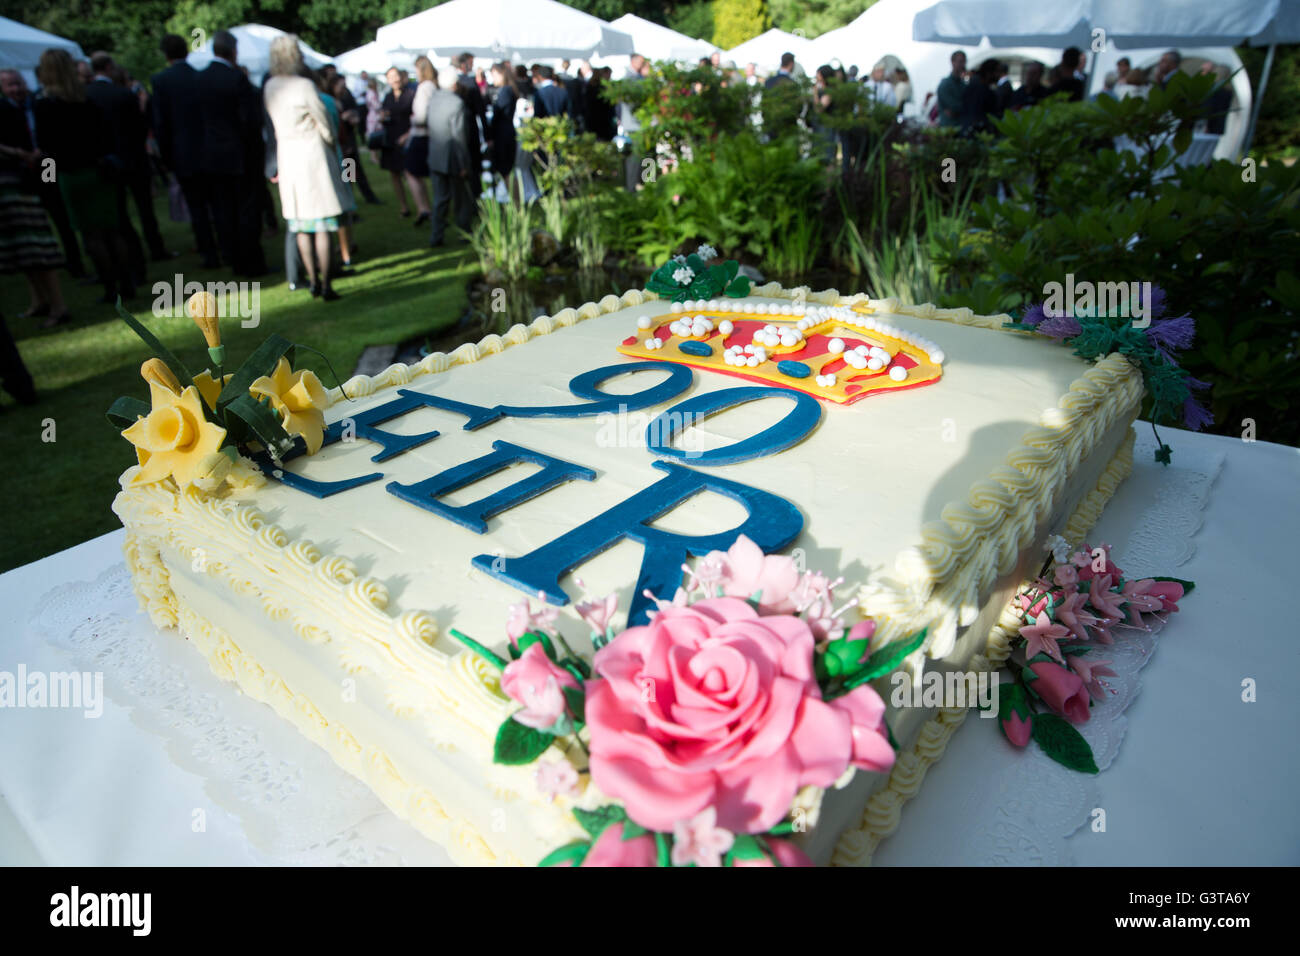 A Birthday Cake Was Made For The Queens 90th Party At Residence Of British Ambassador In Berlin Germany 14 June 2016